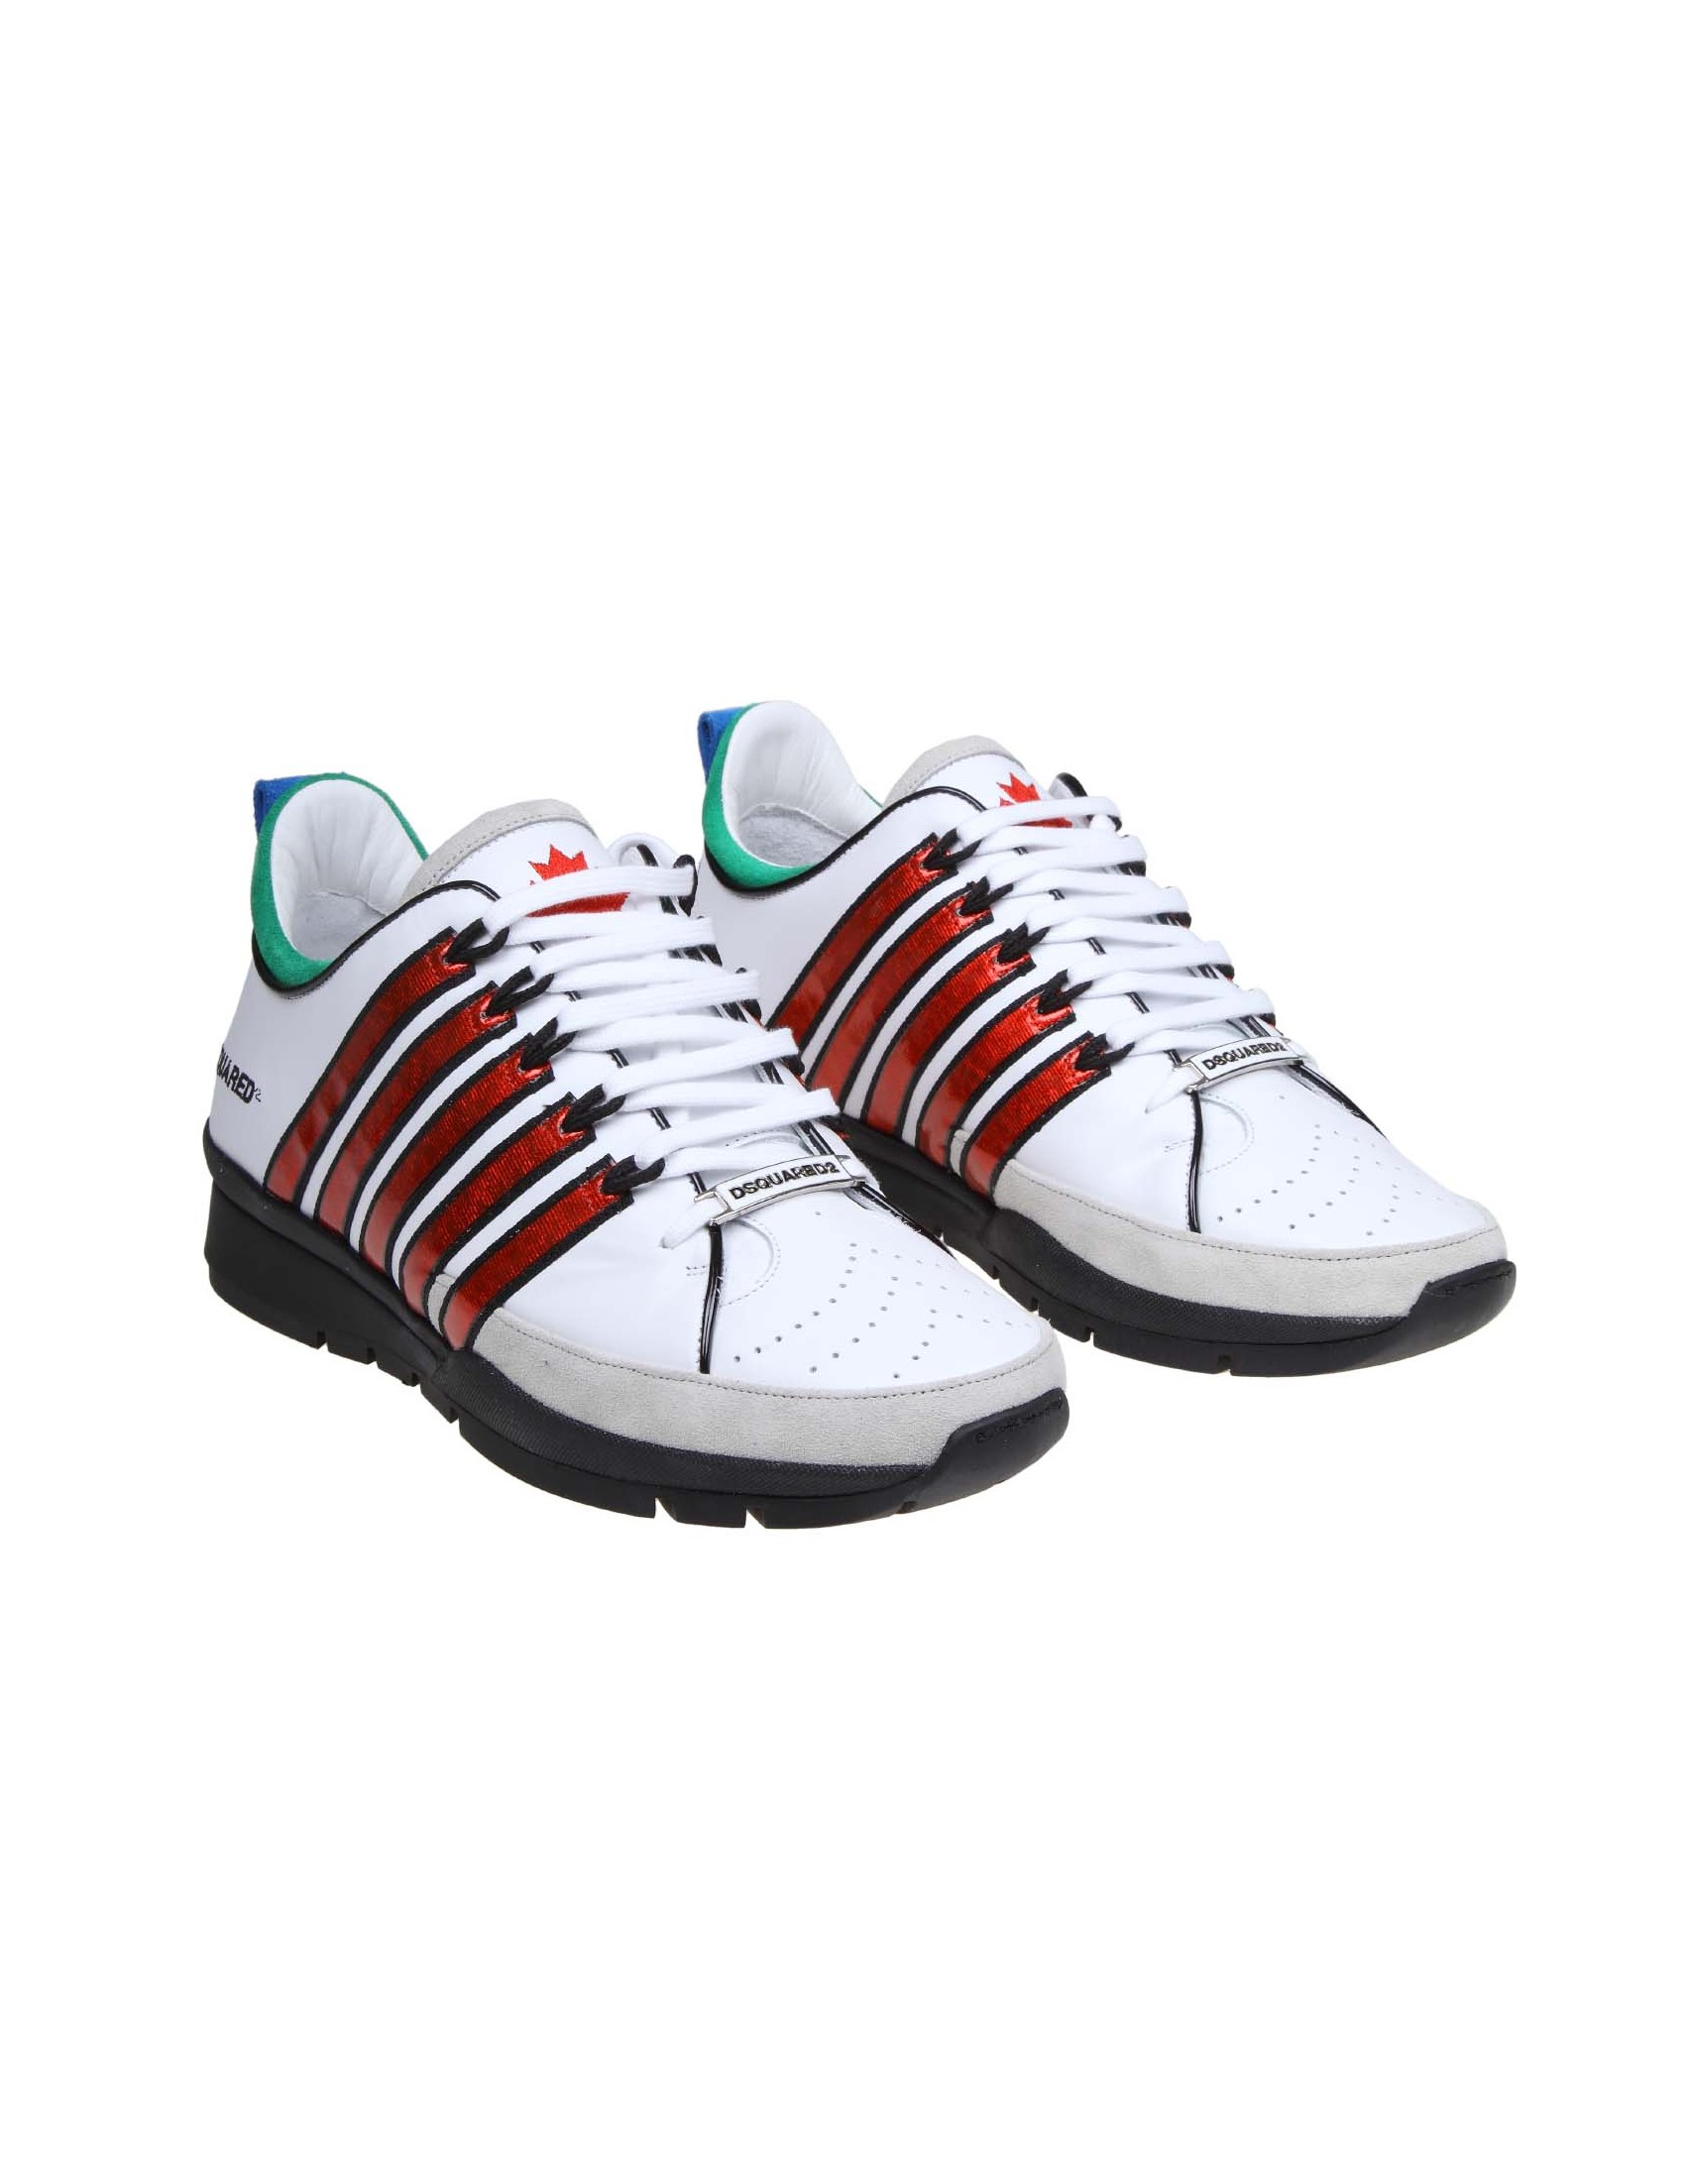 check out 8daa1 d9ea2 DSQUARED2 SNEAKERS 251 IN LEATHER